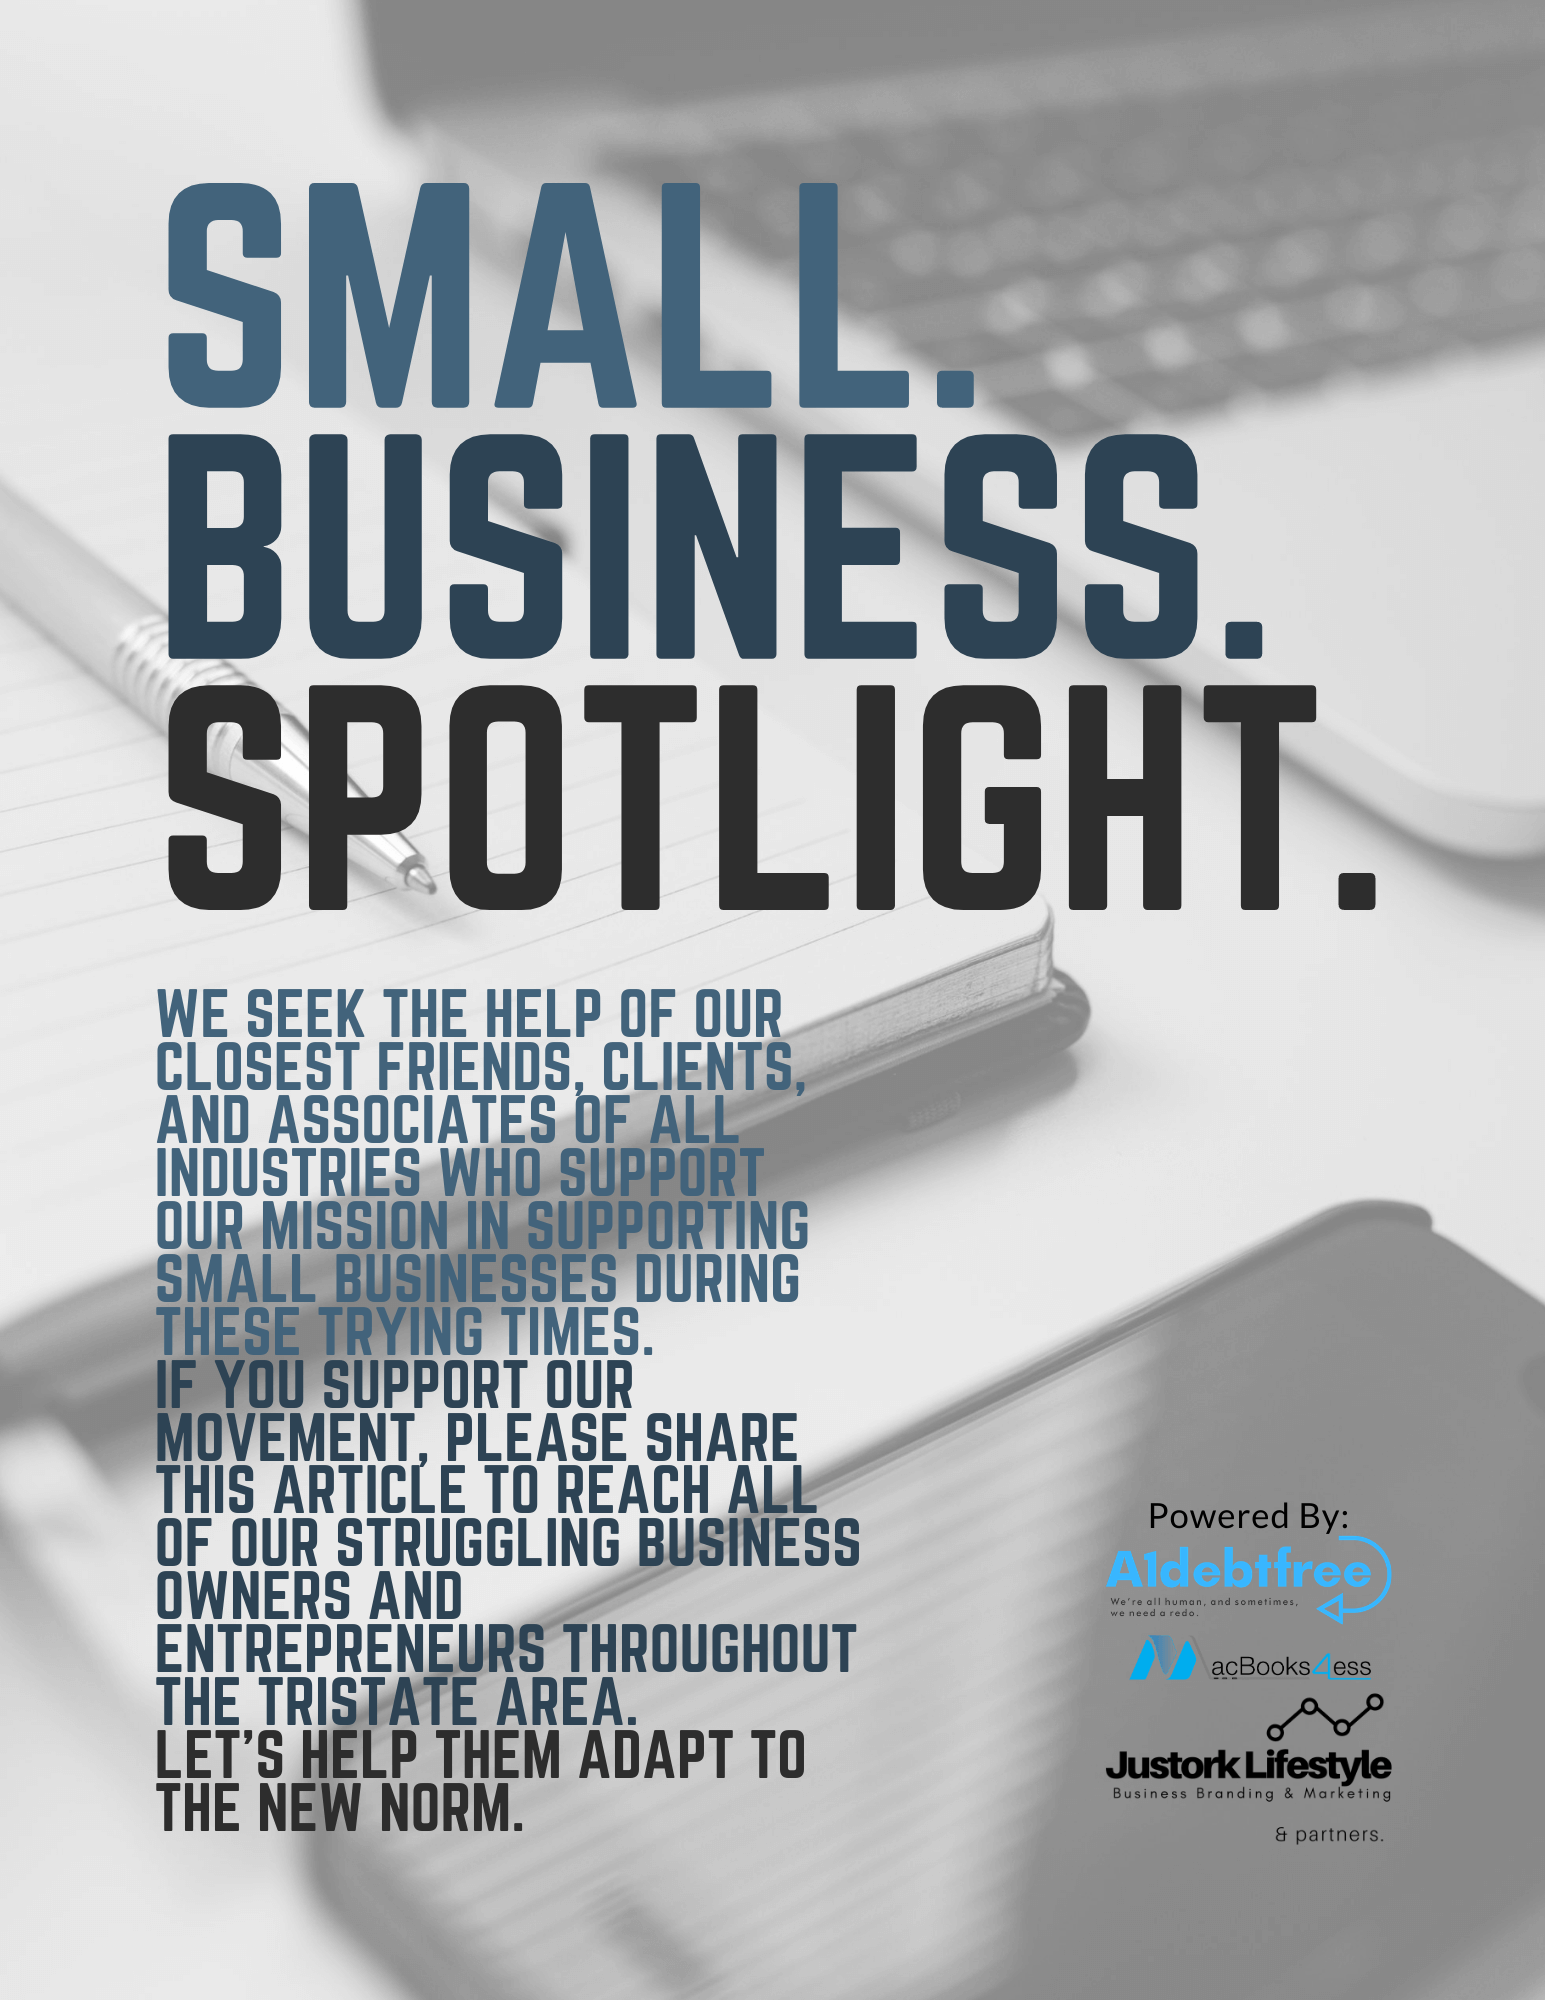 Justork Lifestyle Presents the Small Business Spotlight giveaway